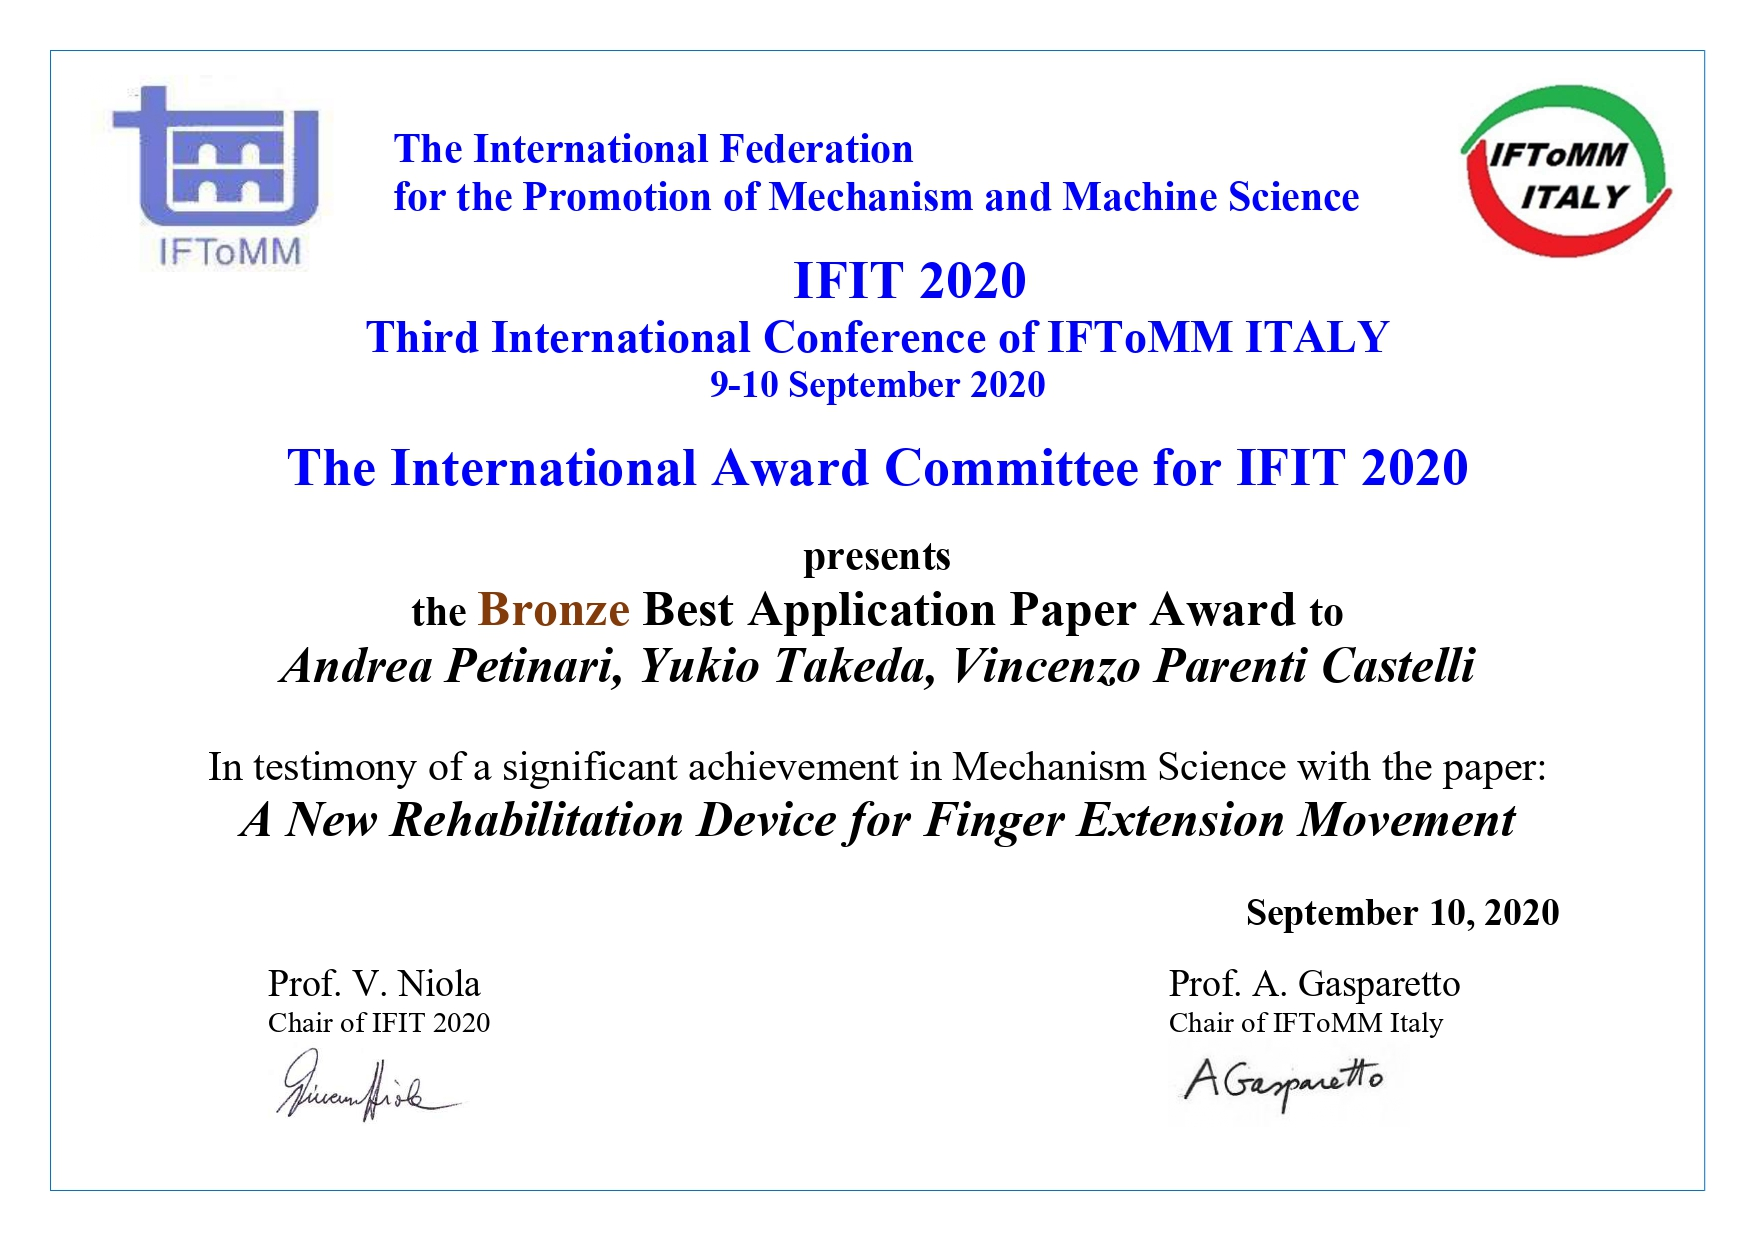 Takeda won the bronze in IFIT2020